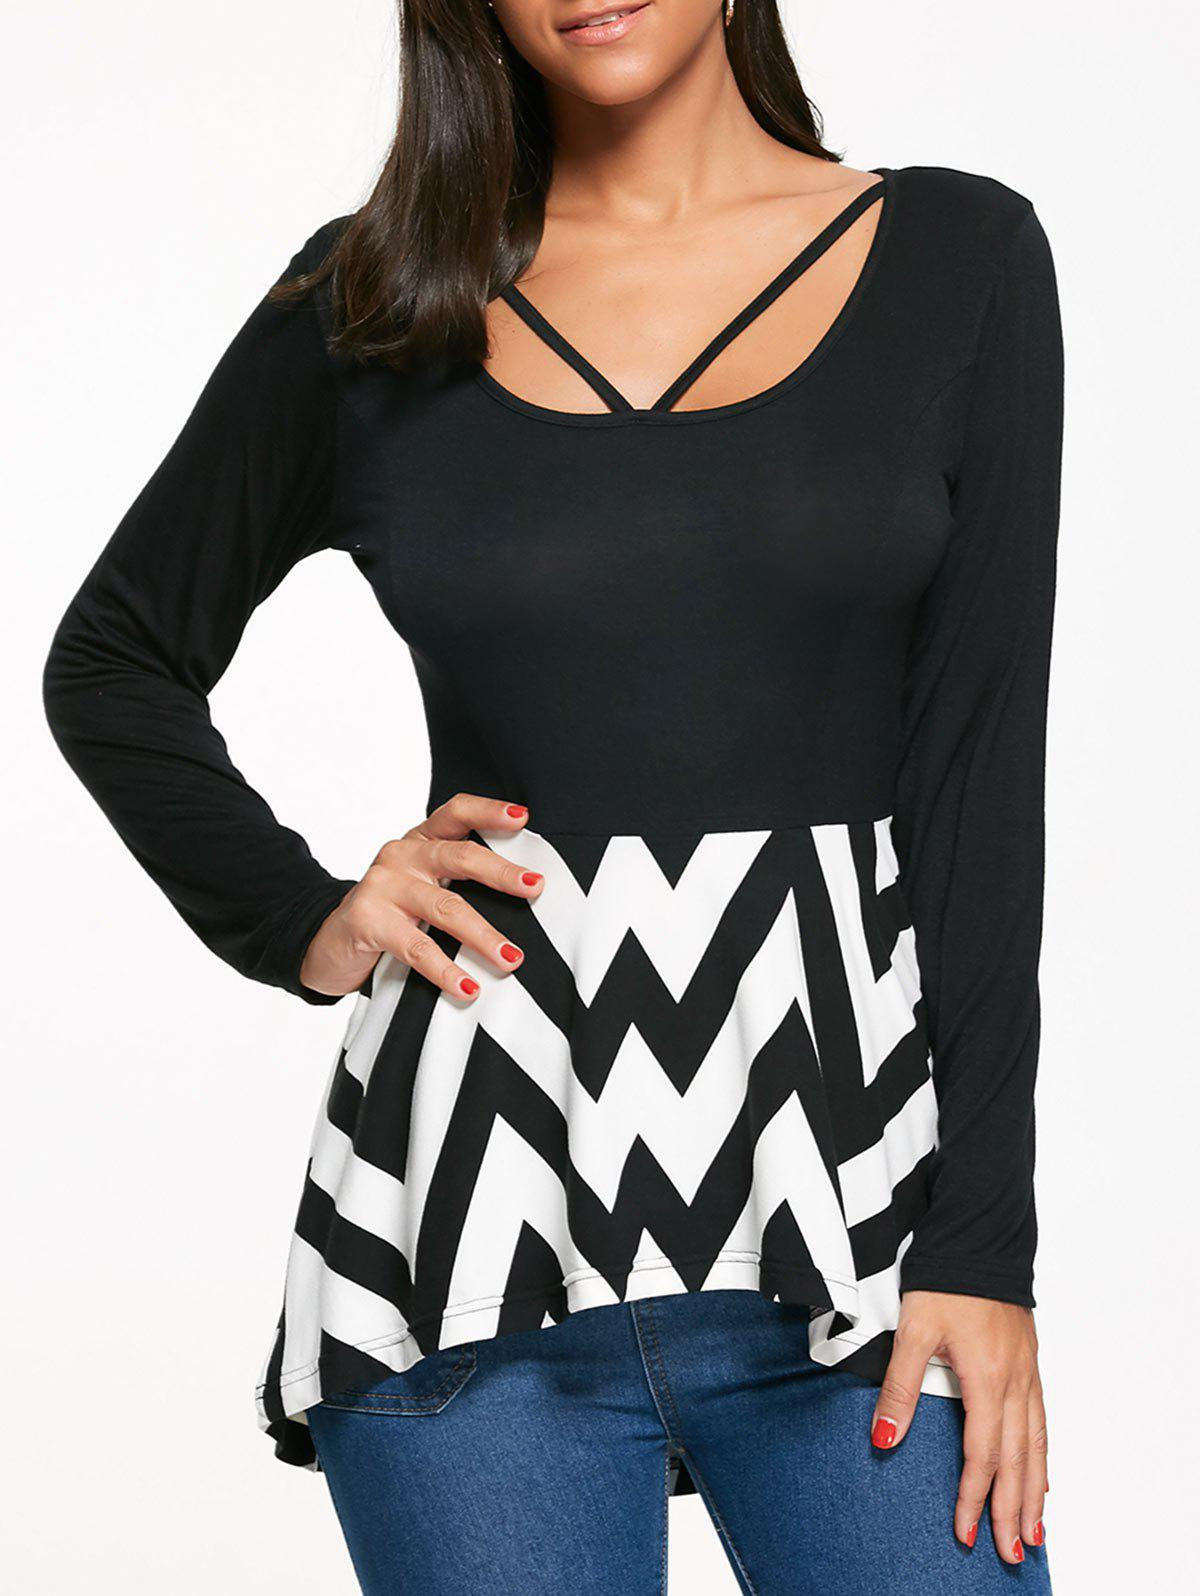 Zigzag Print Long Sleeve Peplum T-shirtWOMEN<br><br>Size: 2XL; Color: WHITE AND BLACK; Material: Polyester,Spandex; Shirt Length: Regular; Sleeve Length: Full; Collar: U Neck; Style: Casual; Pattern Type: Chevron/Zig Zag,Print; Season: Fall,Spring; Elasticity: Elastic; Weight: 0.2900kg; Package Contents: 1 x T-shirt;